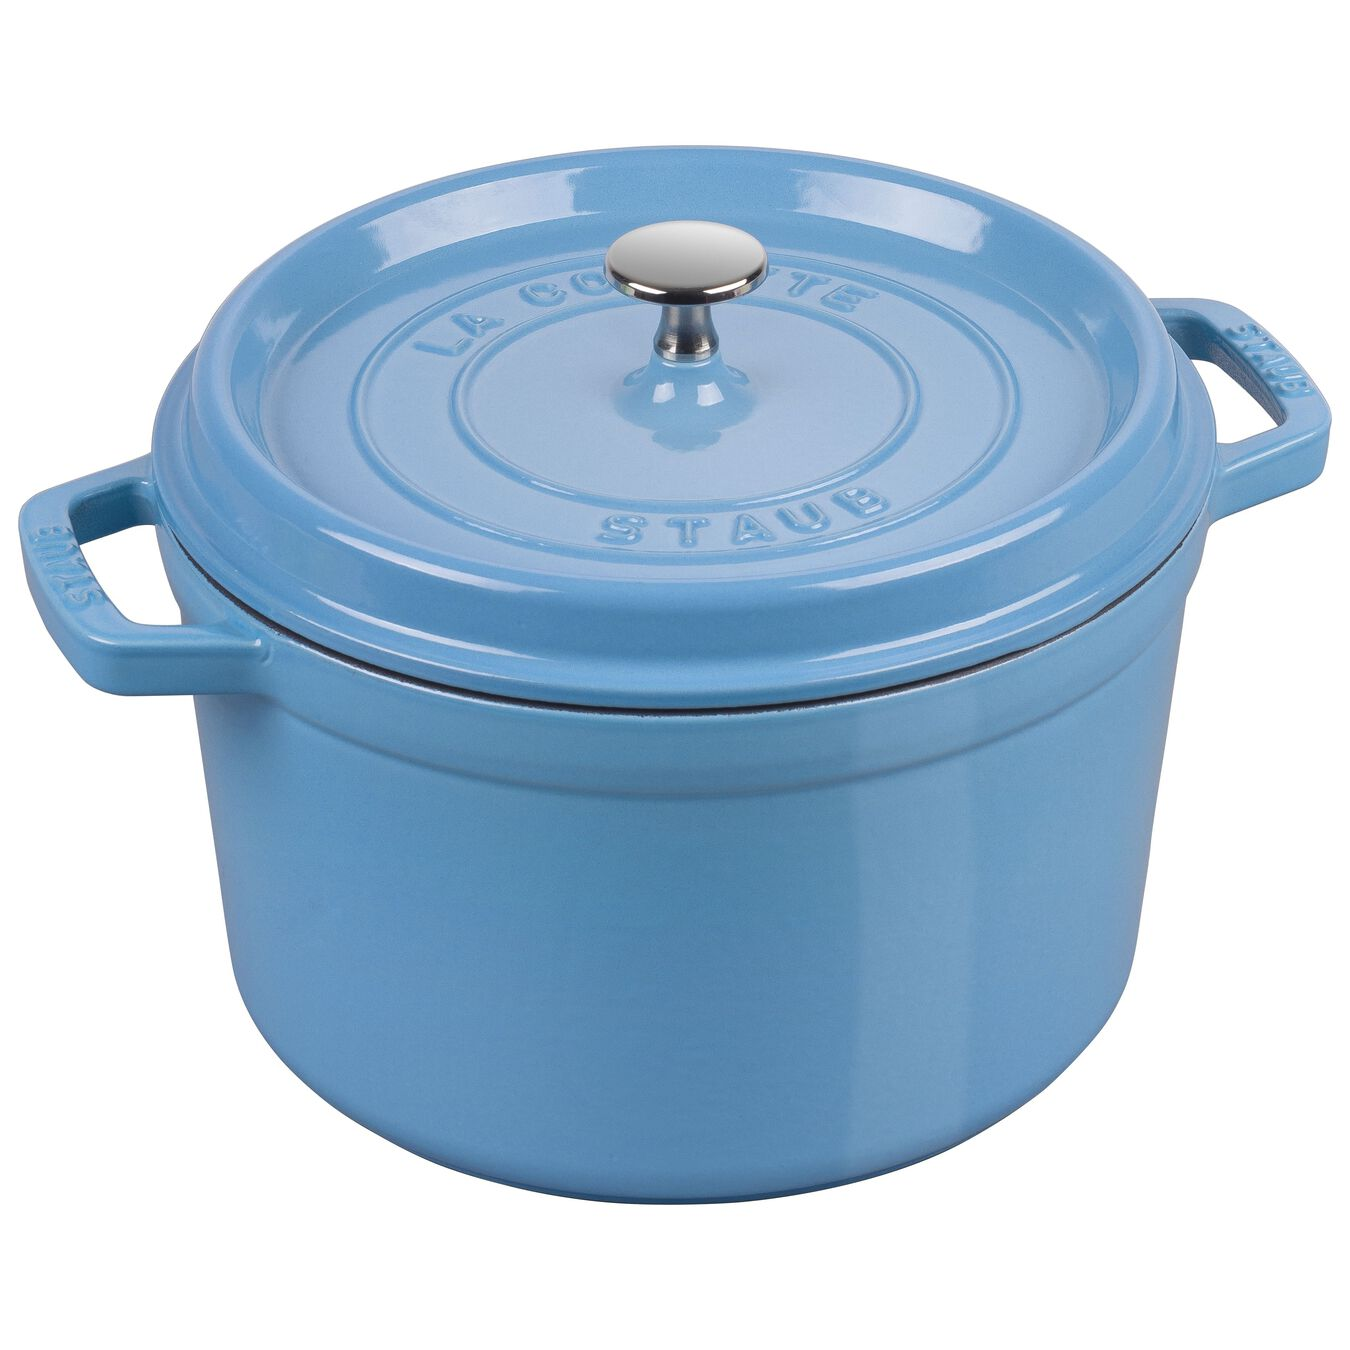 5 qt, round, Cocotte, ice-blue - Visual Imperfections,,large 1